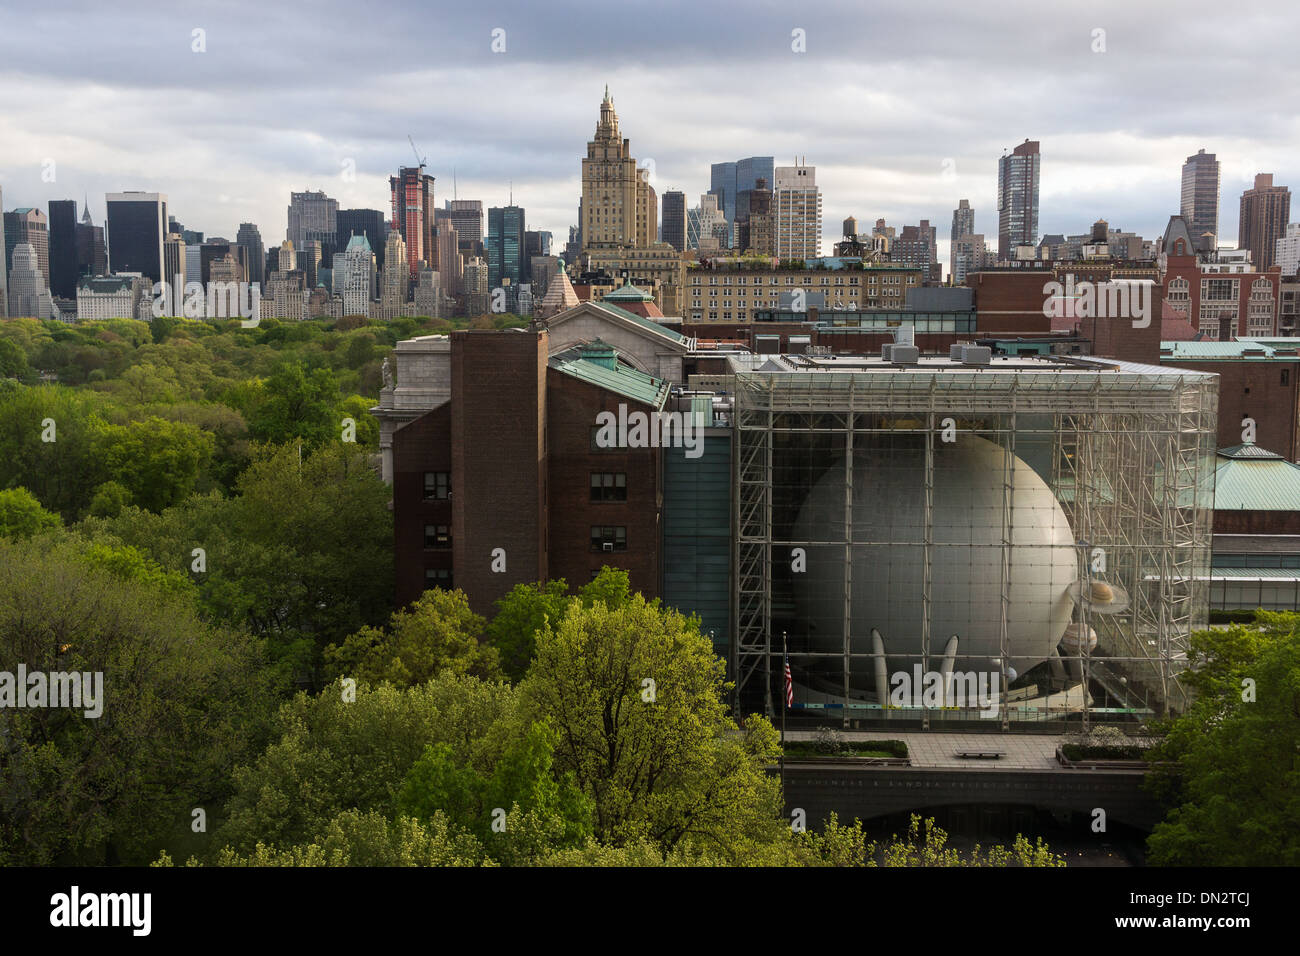 Museum of Natural History and Central park, New York City - Stock Image